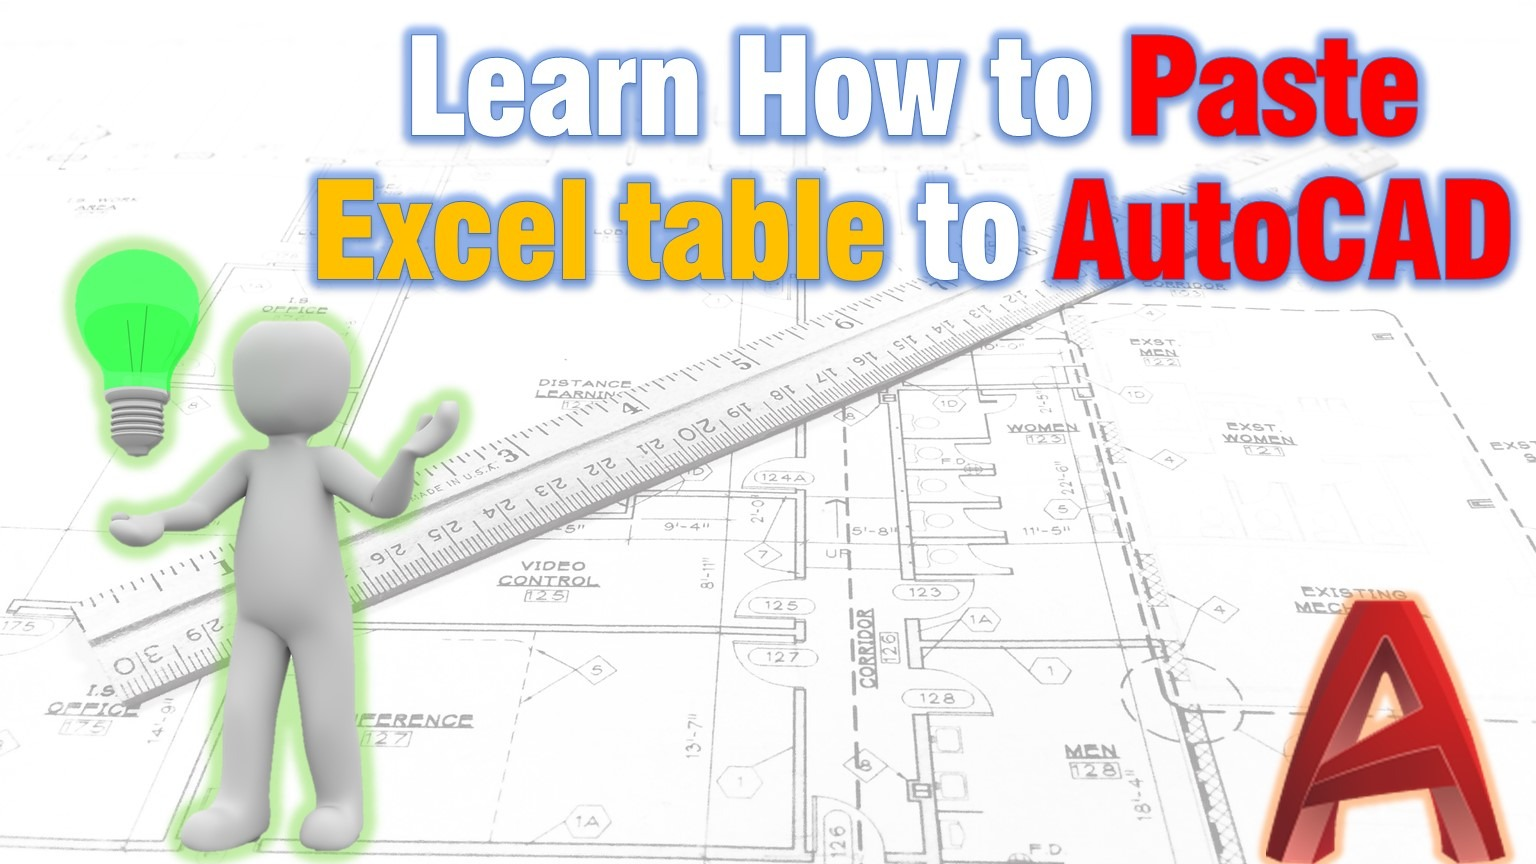 How to paste excel table to AutoCAD